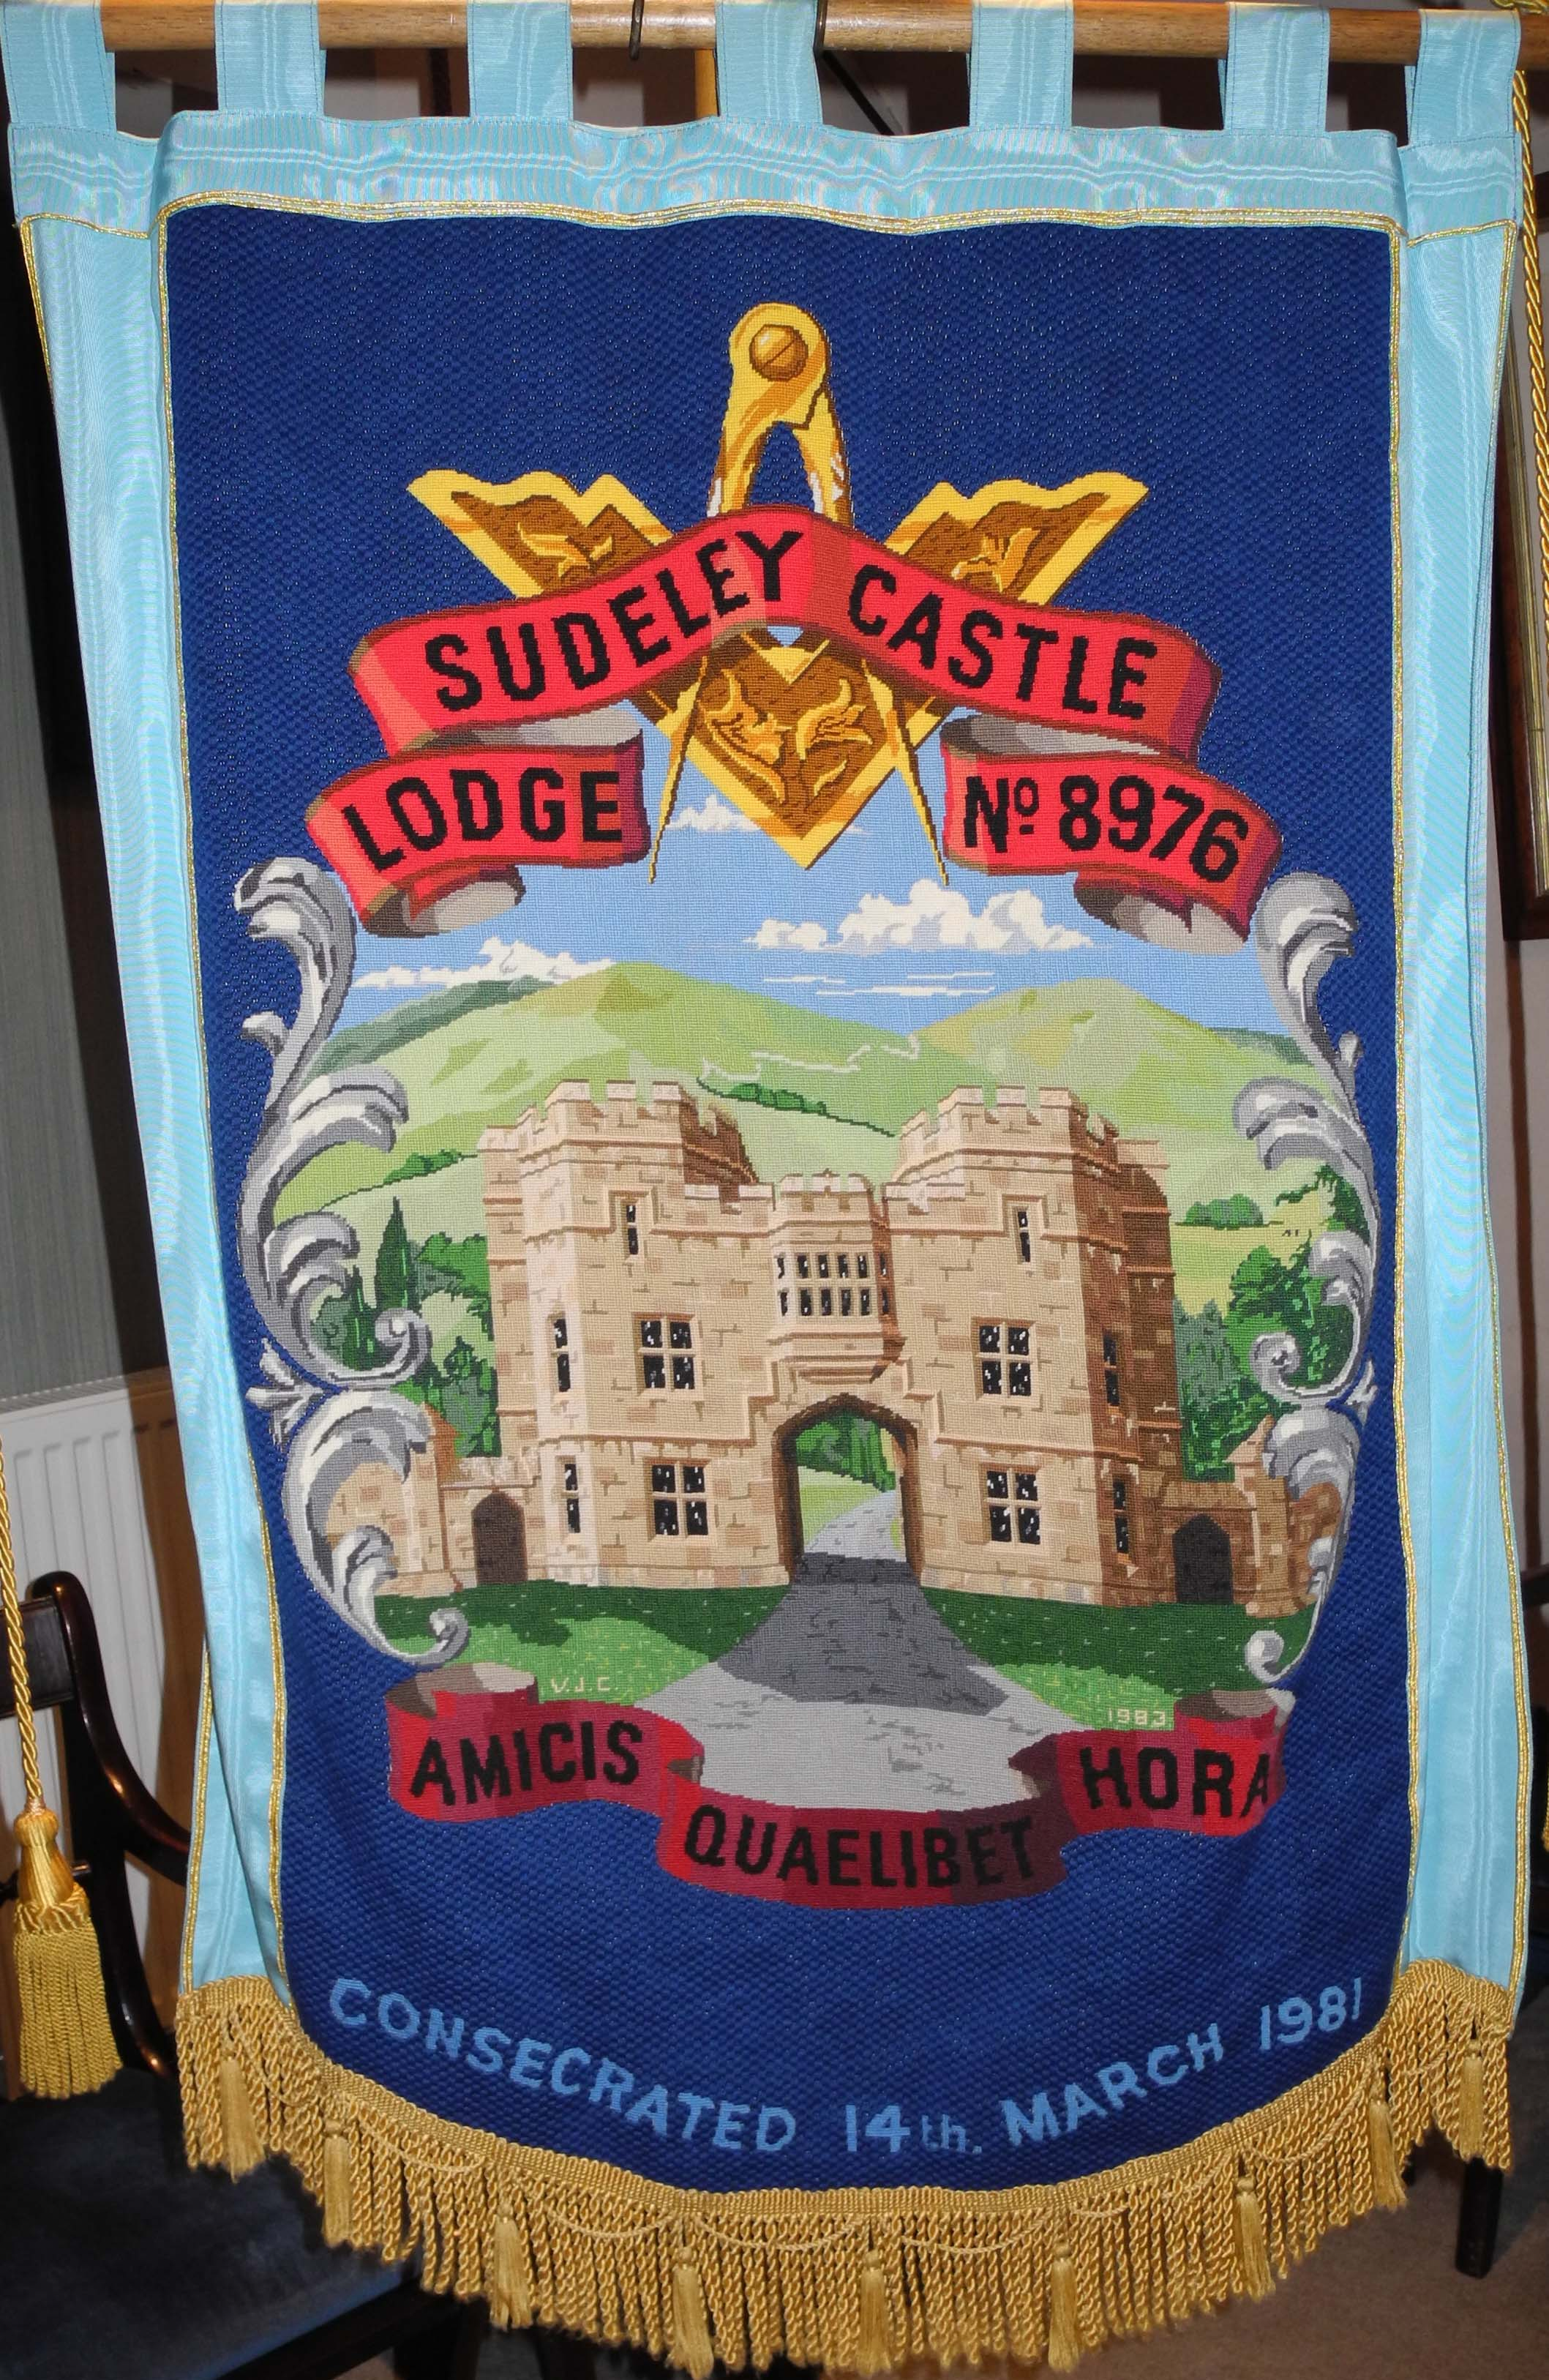 Sudeley Castle Lodge Banner